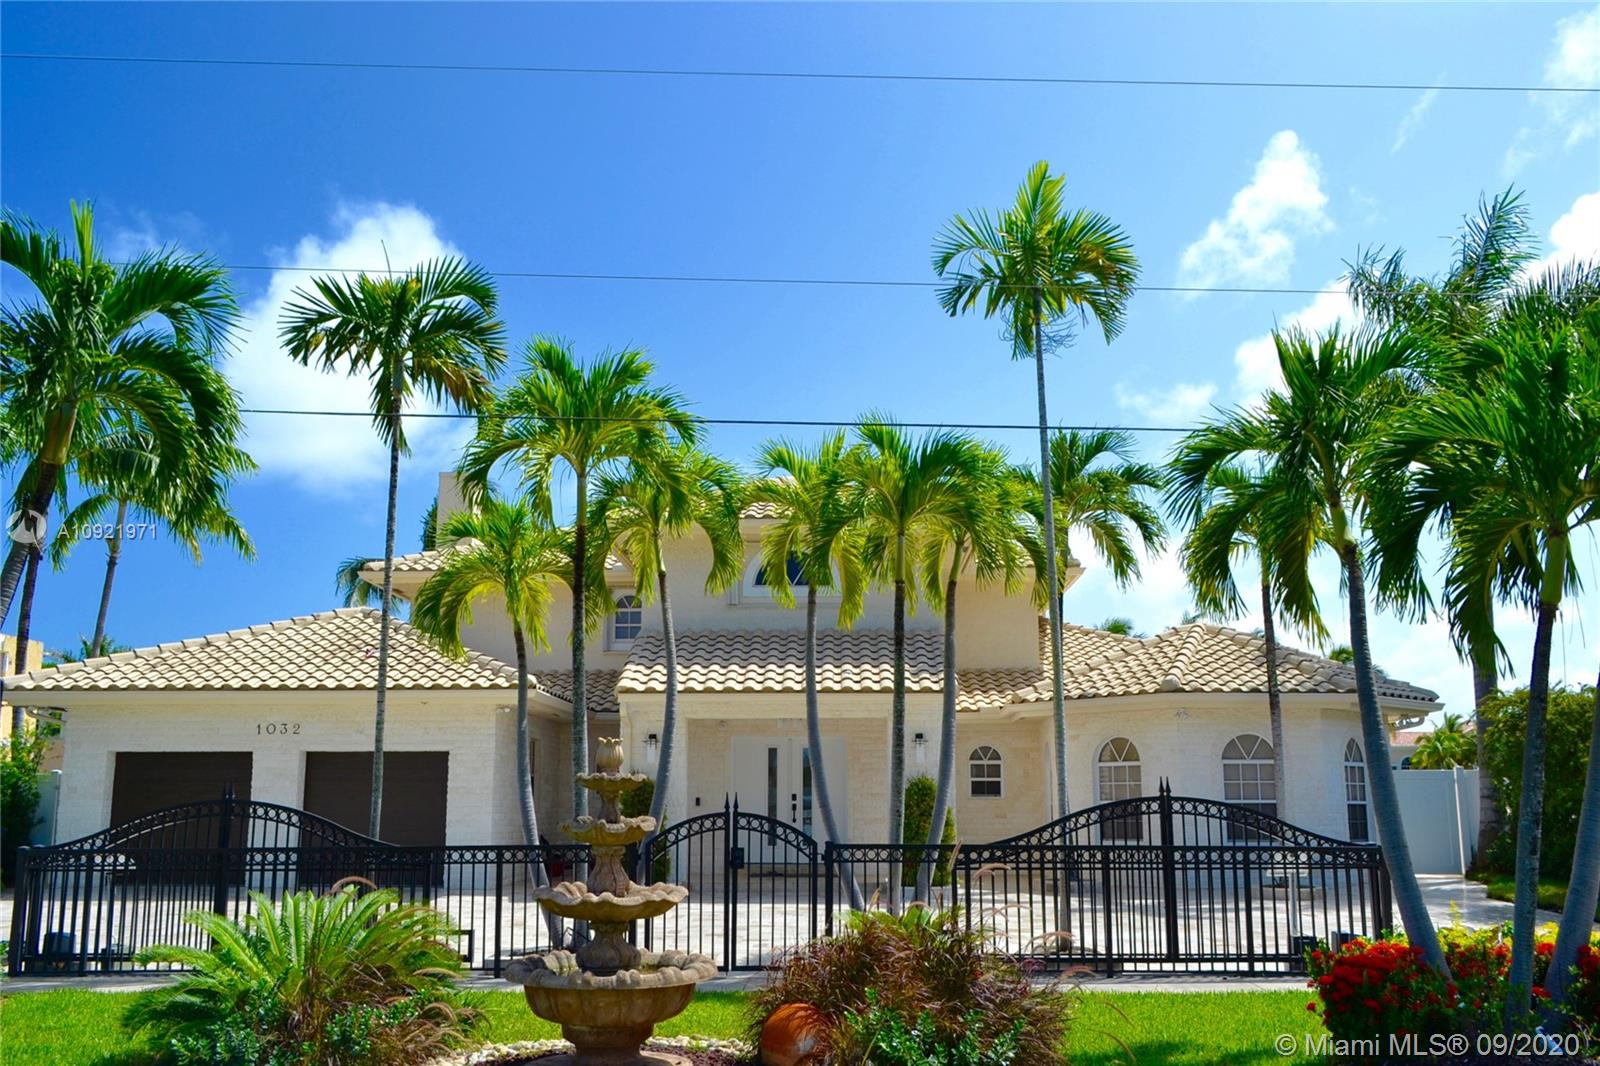 Amazing opportunity to own a completely remodeled home in the Heart of Hollywood Fl. Access to the Ocean and just minutes from major Airports, Fort Lauderdale, Aventura Mall, Bal Harbourl and much more. The home is tastefully finished with custom  Kitchen, Italian Ceramic and White Oak Floors. All Bathrooms are finished with the best materials in the industry. The home is move in ready with an oversized dock for a boat.